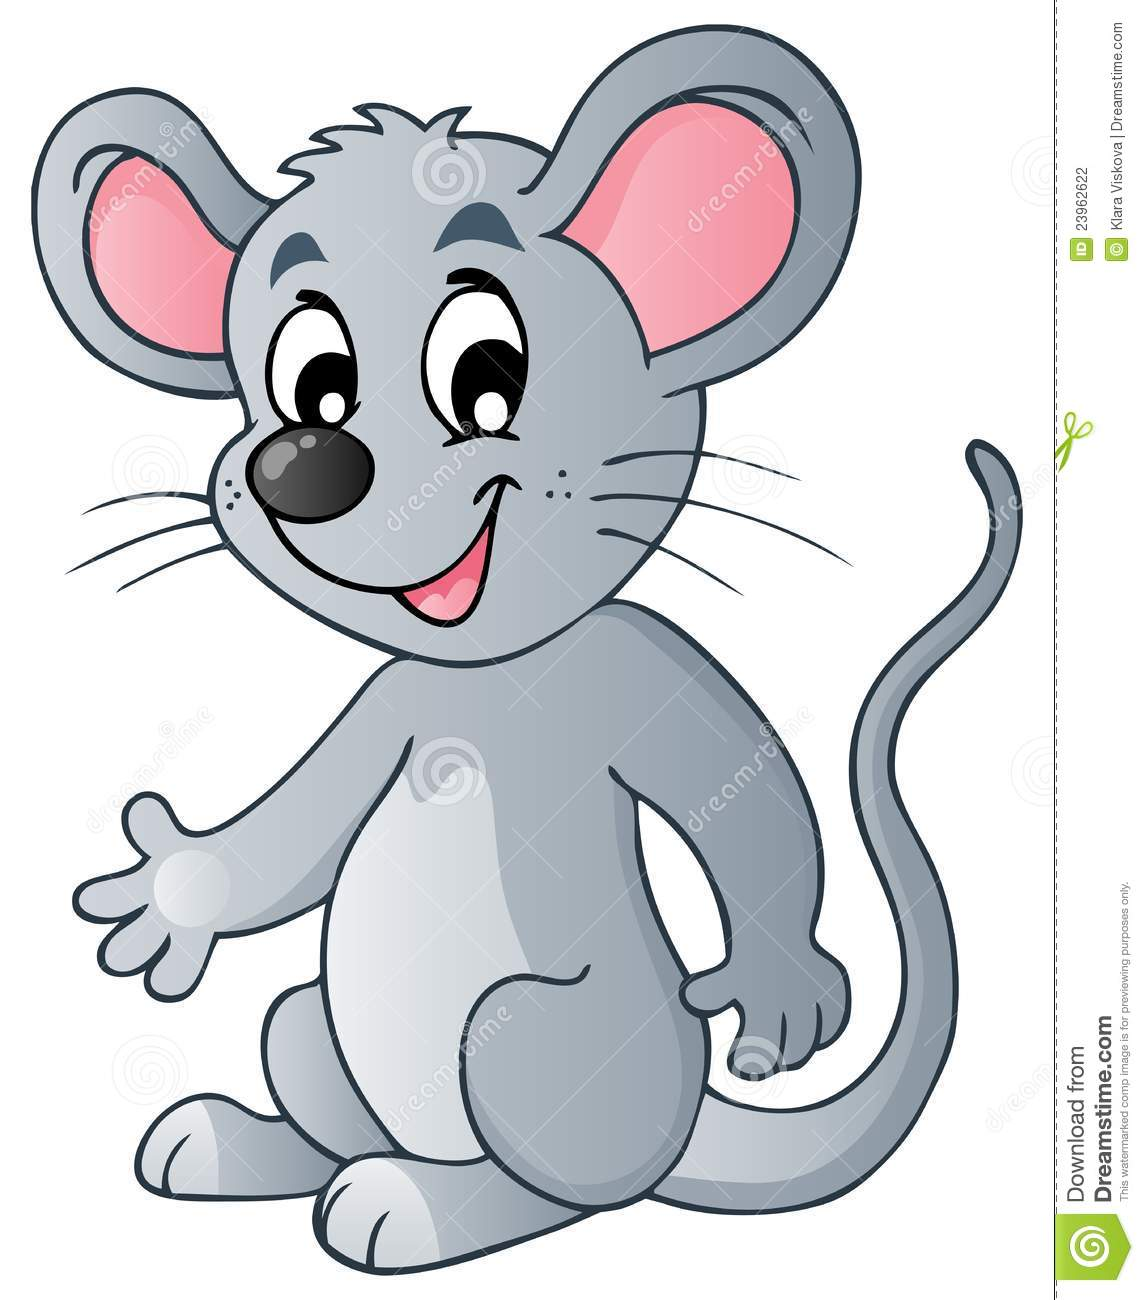 Cute Cartoon Mouse Stock Photography - Image: 23962622